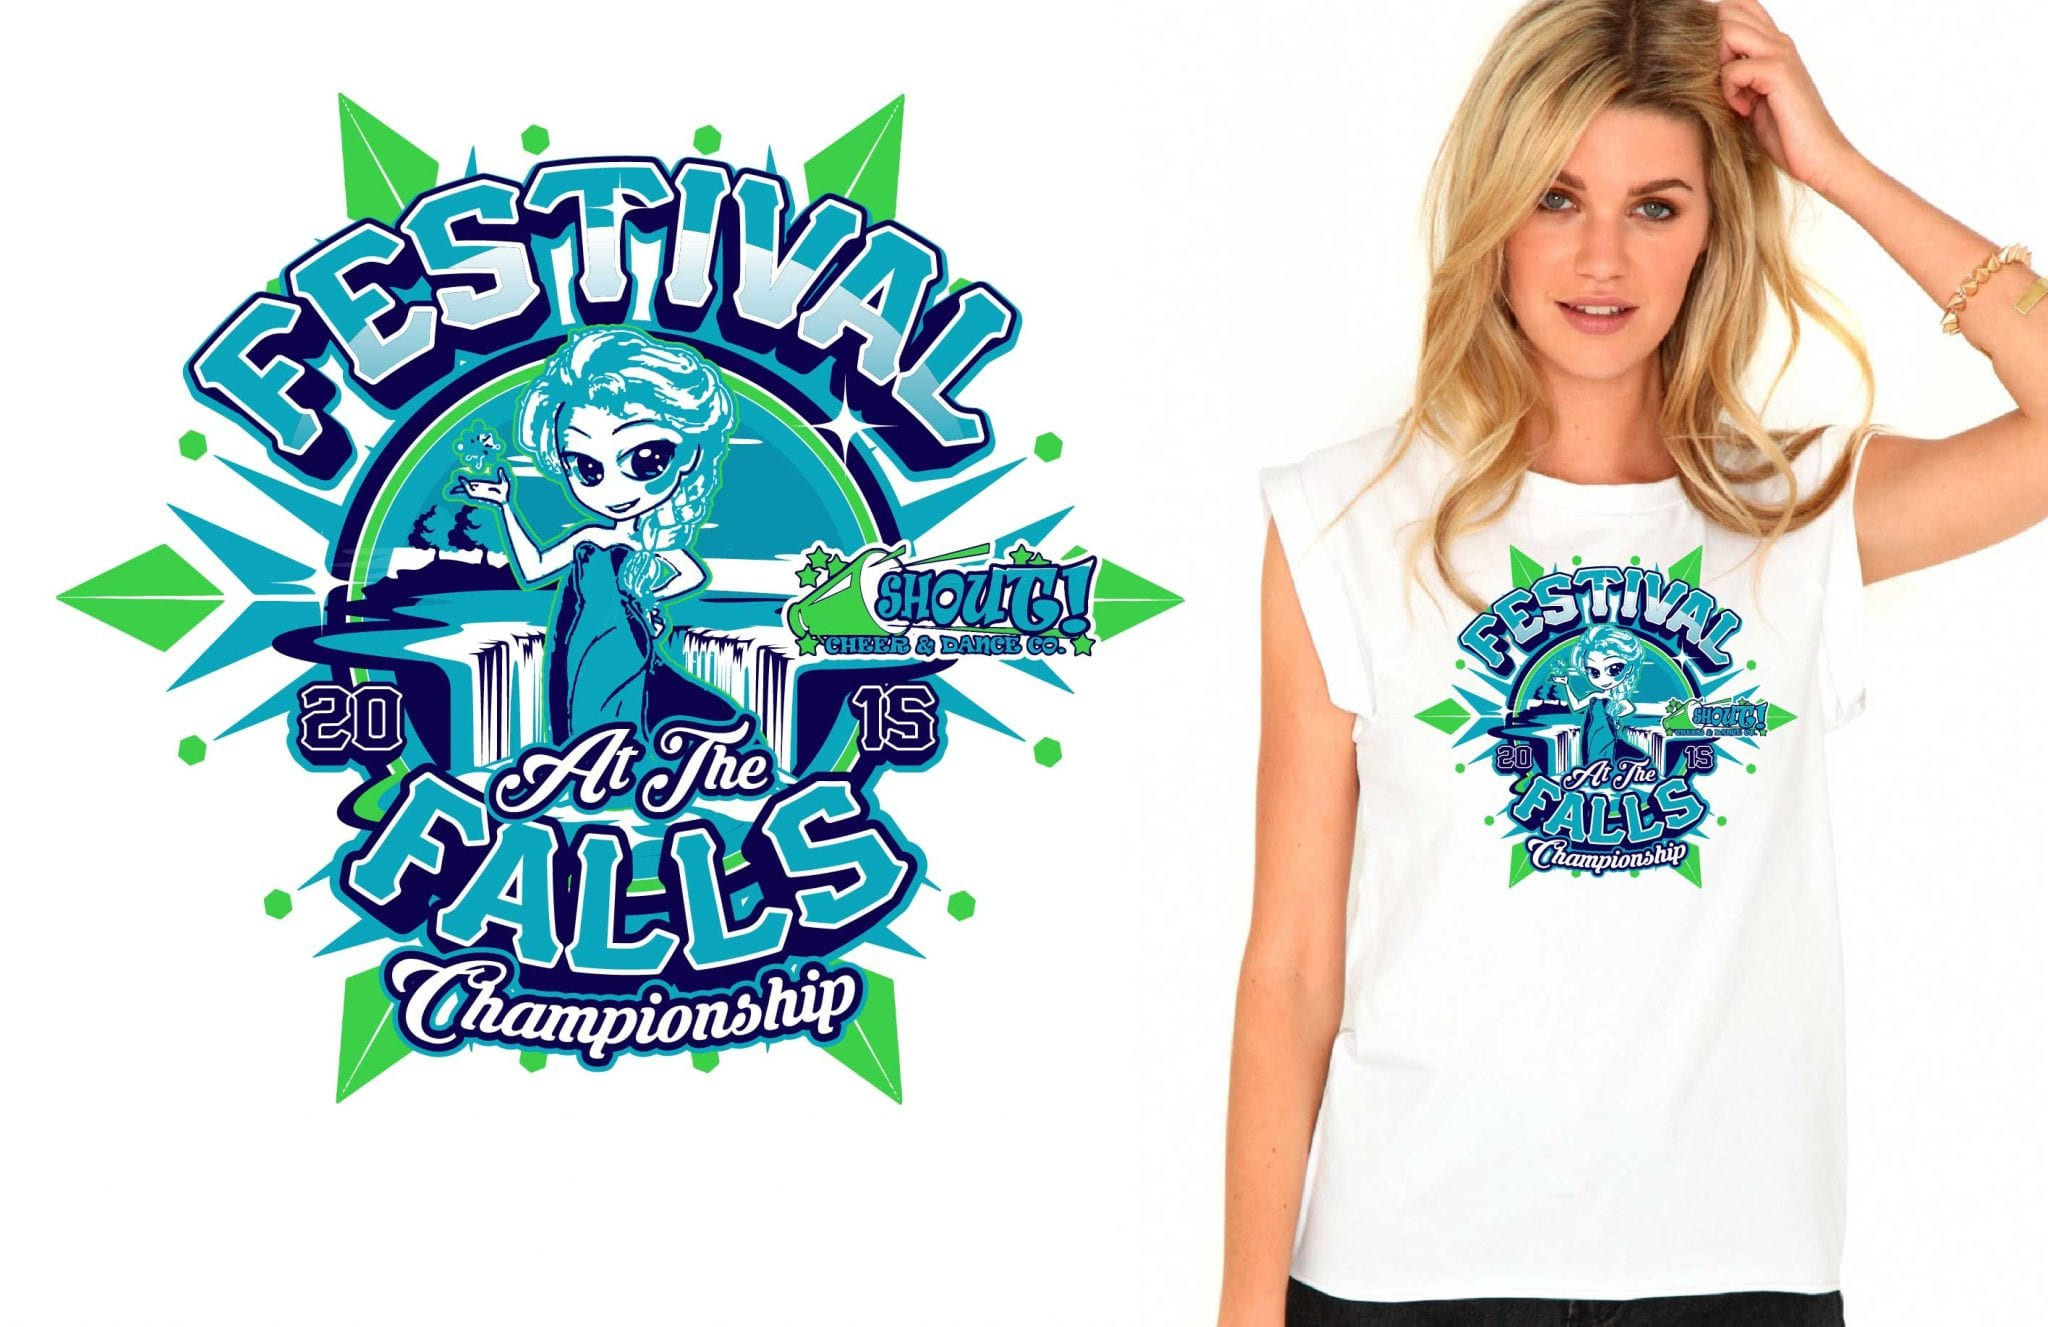 Cheer and Dance creative logo design for shirt by UrArtStudio.com 2015 Festival at the Falls Championship